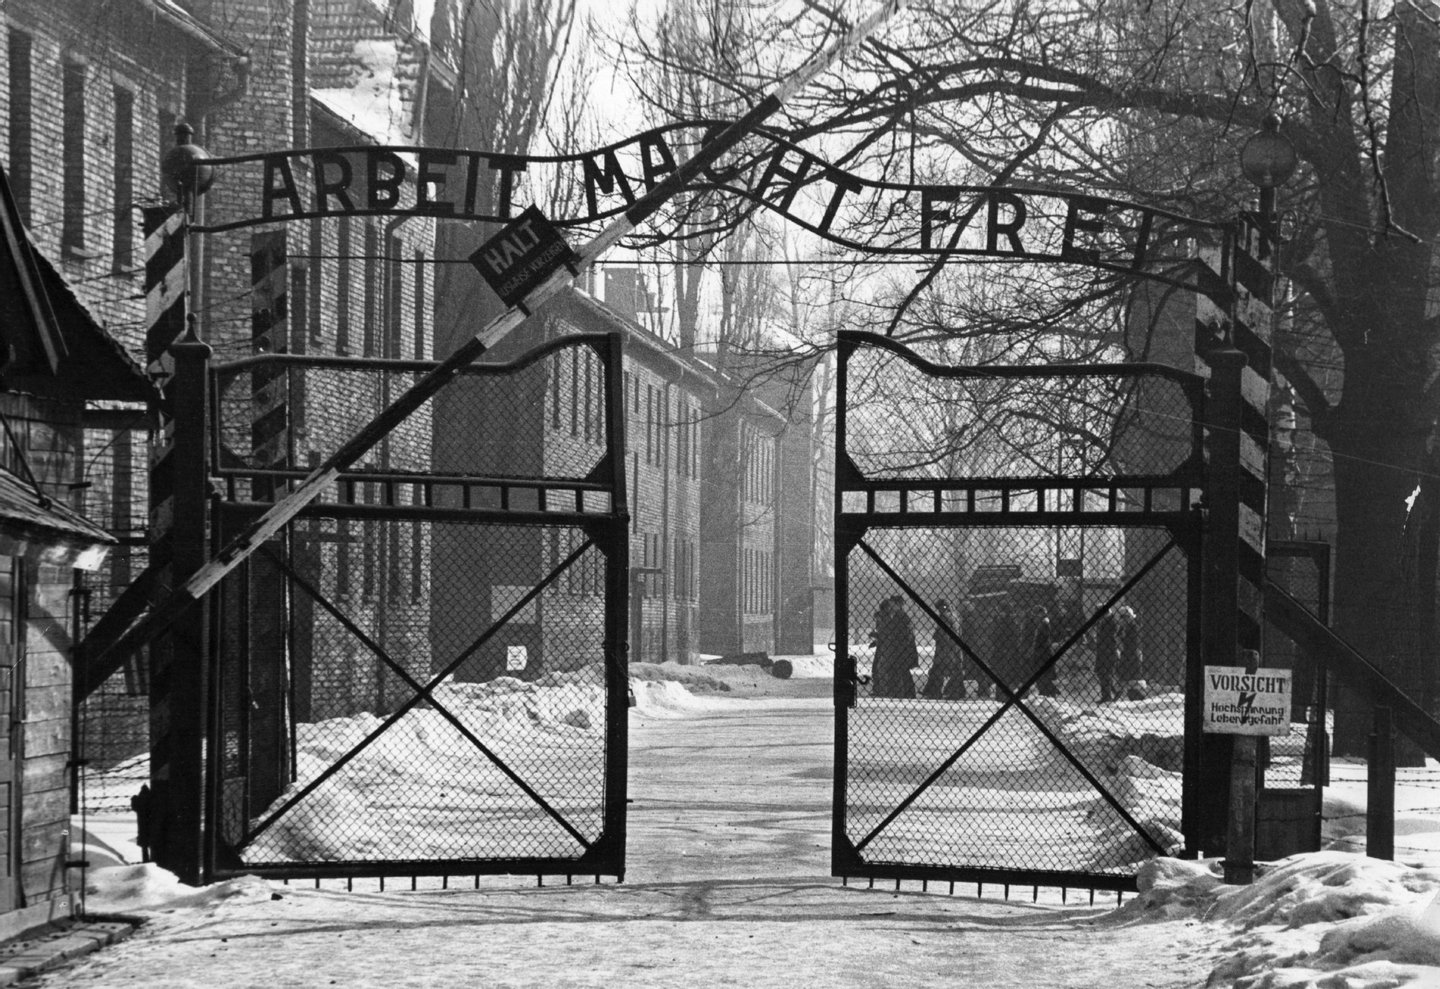 The gates of the Nazi concentration camp at Auschwitz, Poland, circa 1965. The sign above them is 'Arbeit Macht Frei' - 'Work Makes You Free'. (Photo by Keystone/GettyImages)